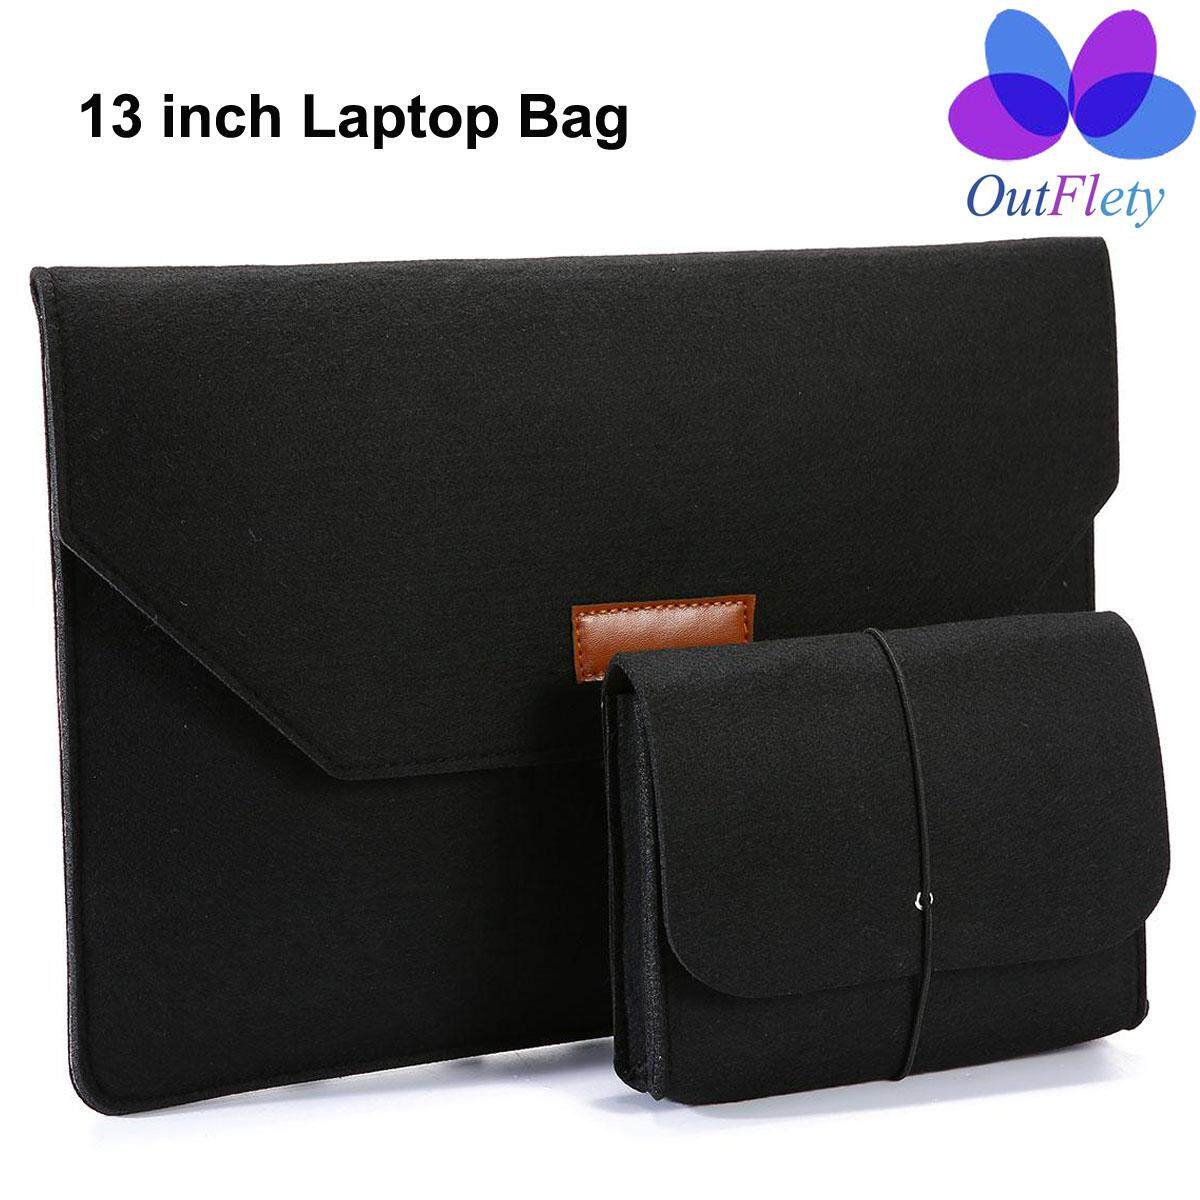 Outflety 13 Inch Sarung Laptop Pelindung Tahan Air Cover Kompatibel Mac Book Air/Retina MacBook Pro/12.9 Inch Ipad Pro/ ultrabook Netbook Membawa Kasus